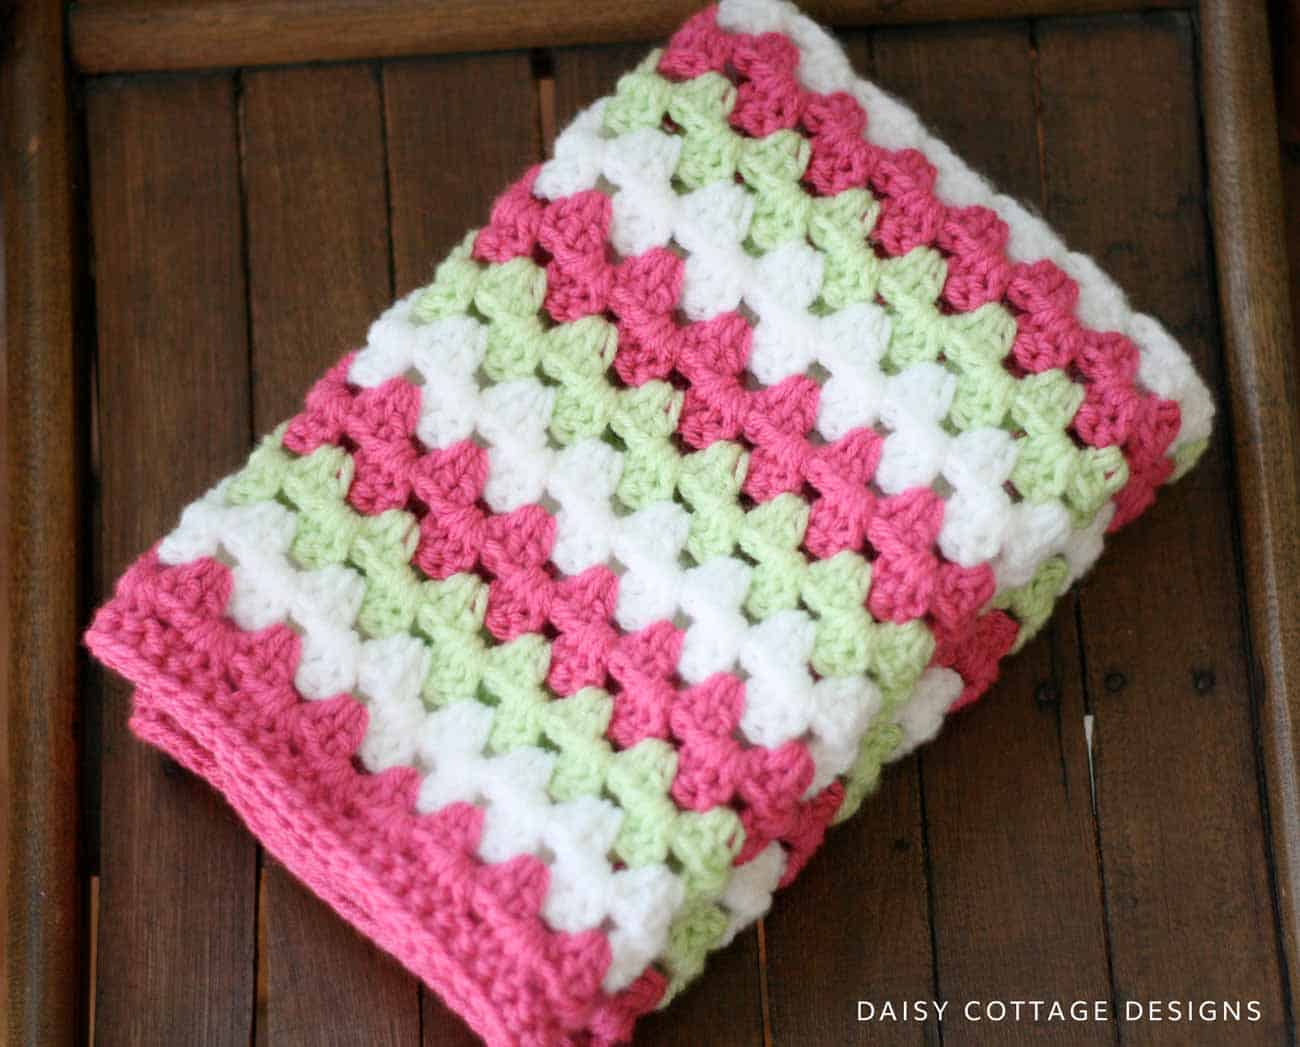 Granny Stripe Crochet Blanket in pink white and green